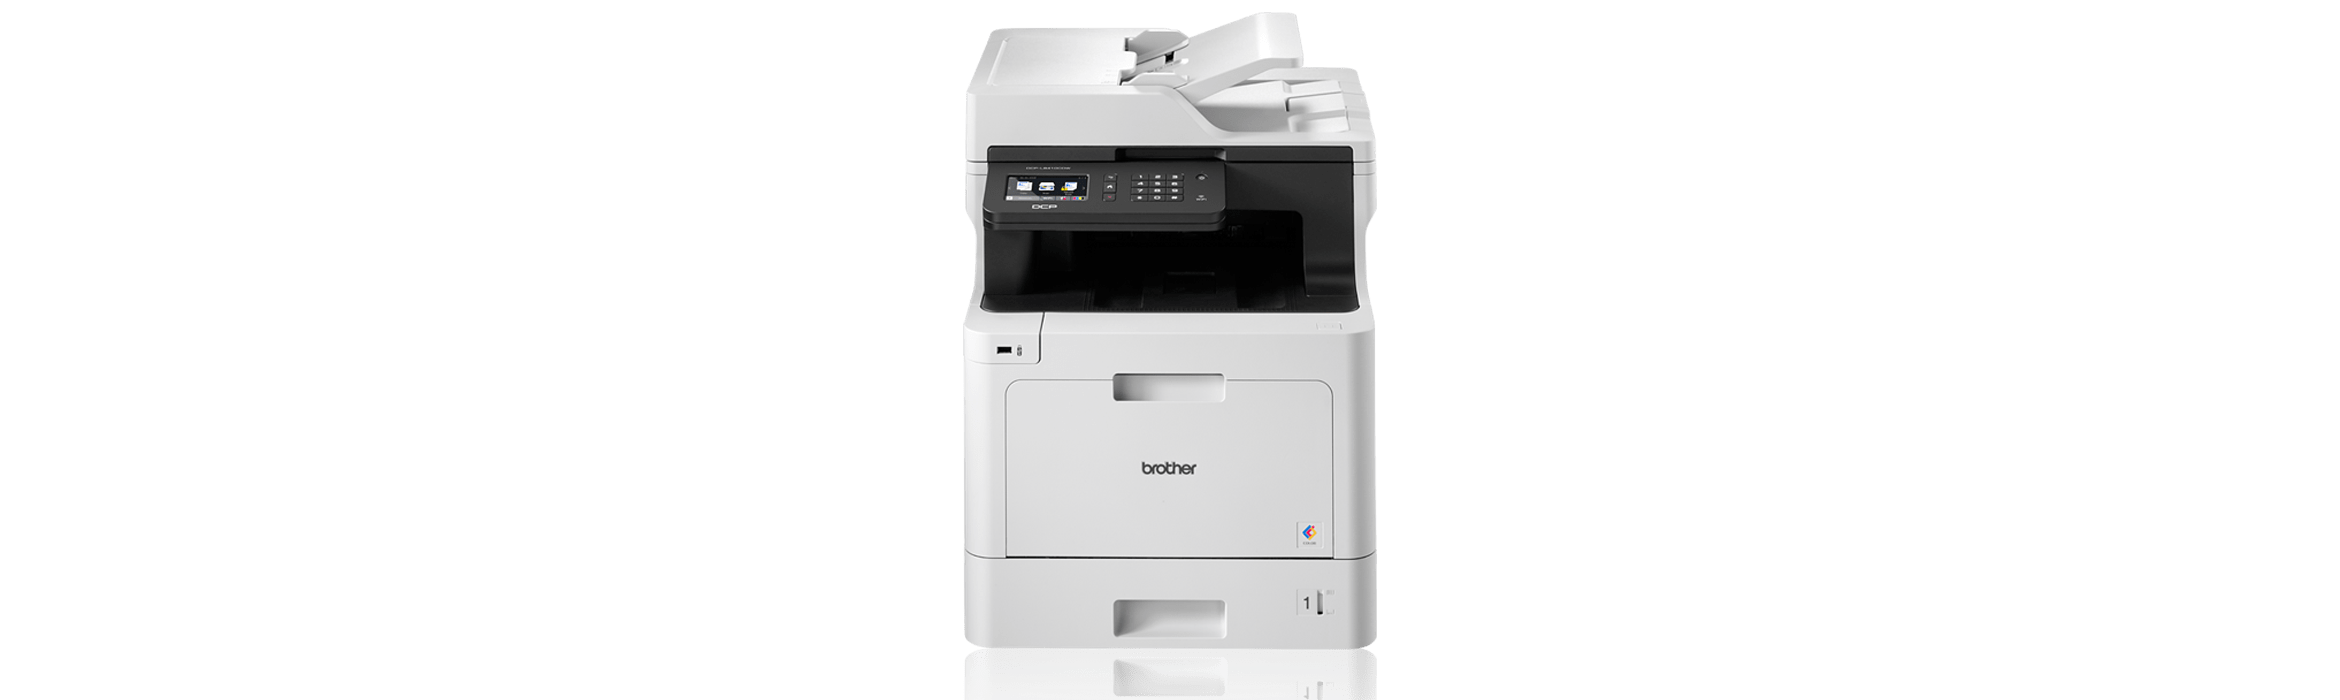 Image shows Brother DCP-L8410CDW Colour Laser Printer on promotion